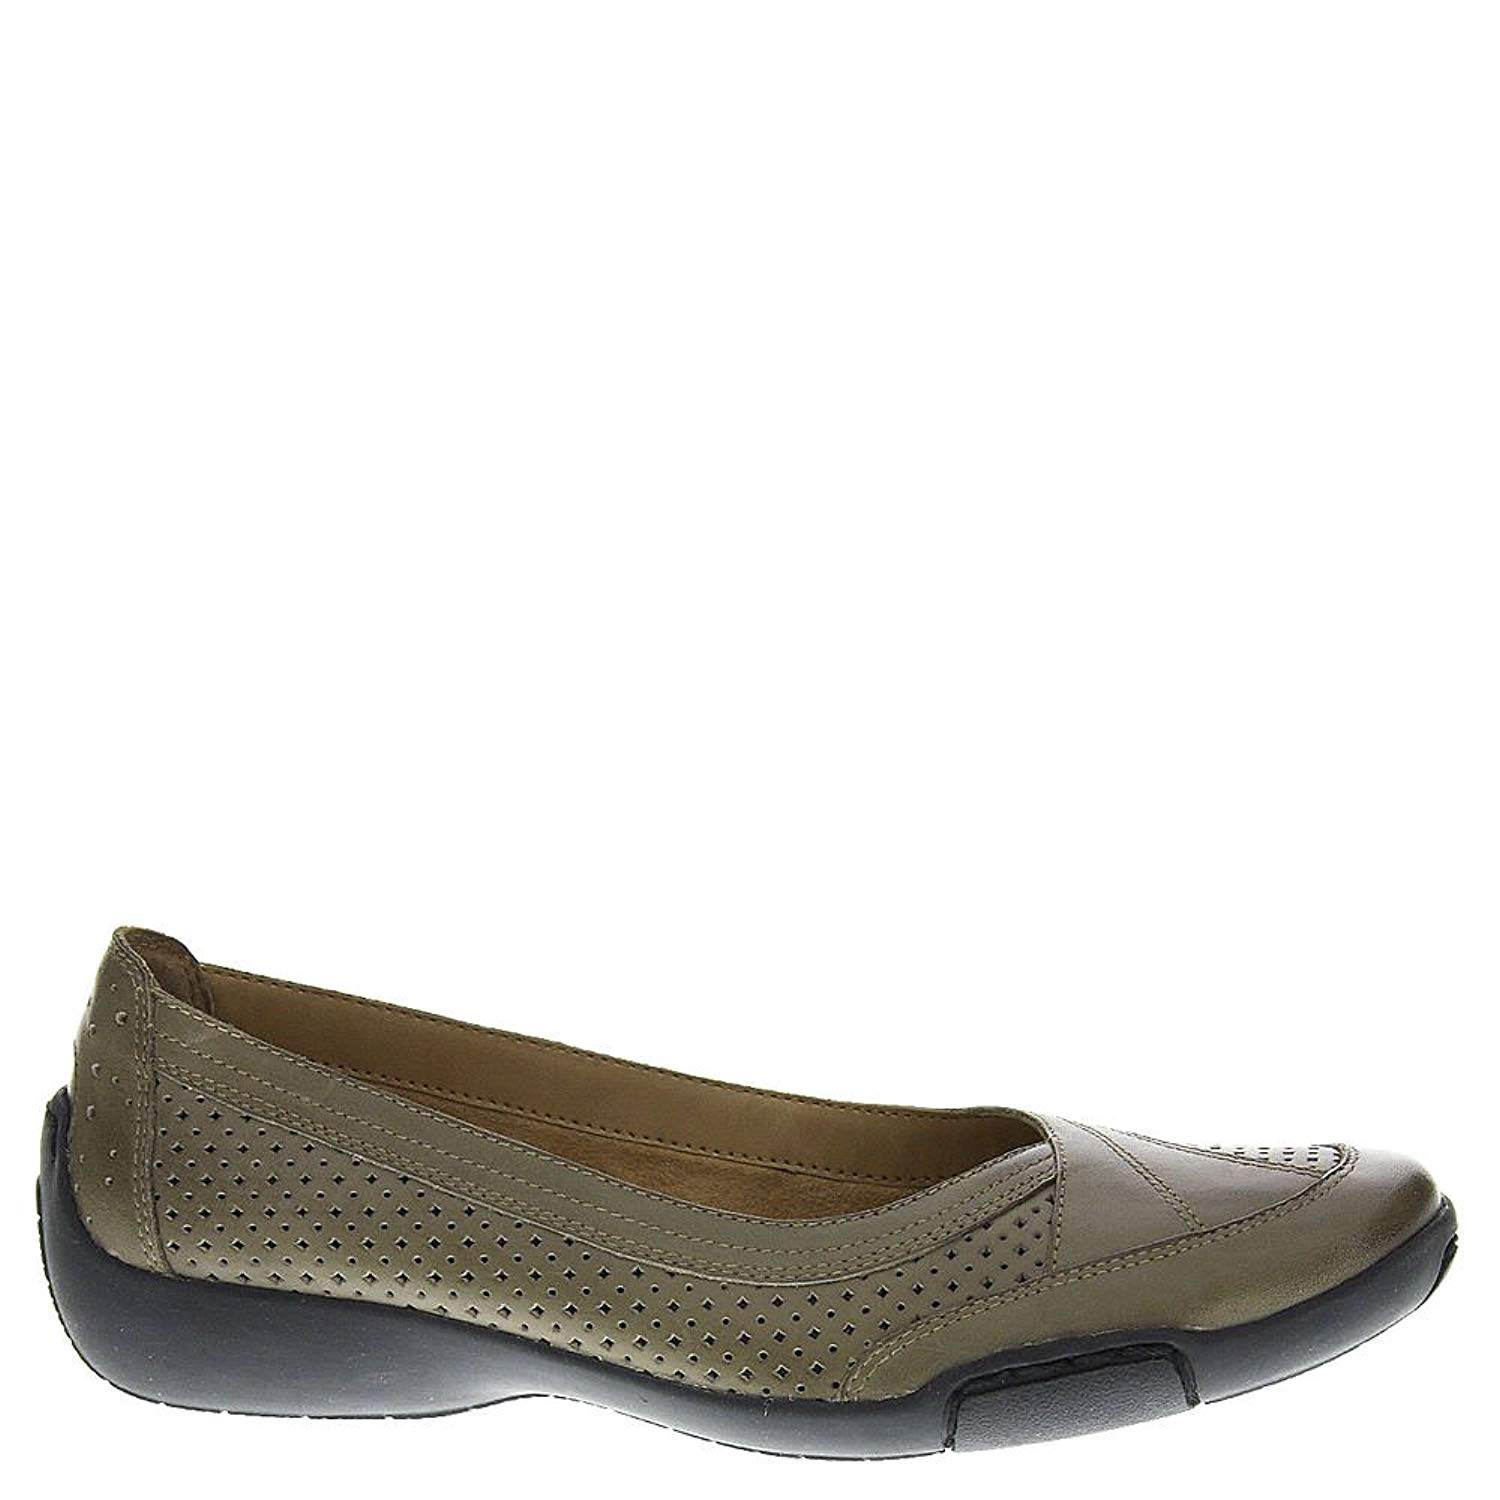 065d3a22509b Auditions Womens Verona 2 Leather Closed Toe Ballet Flats